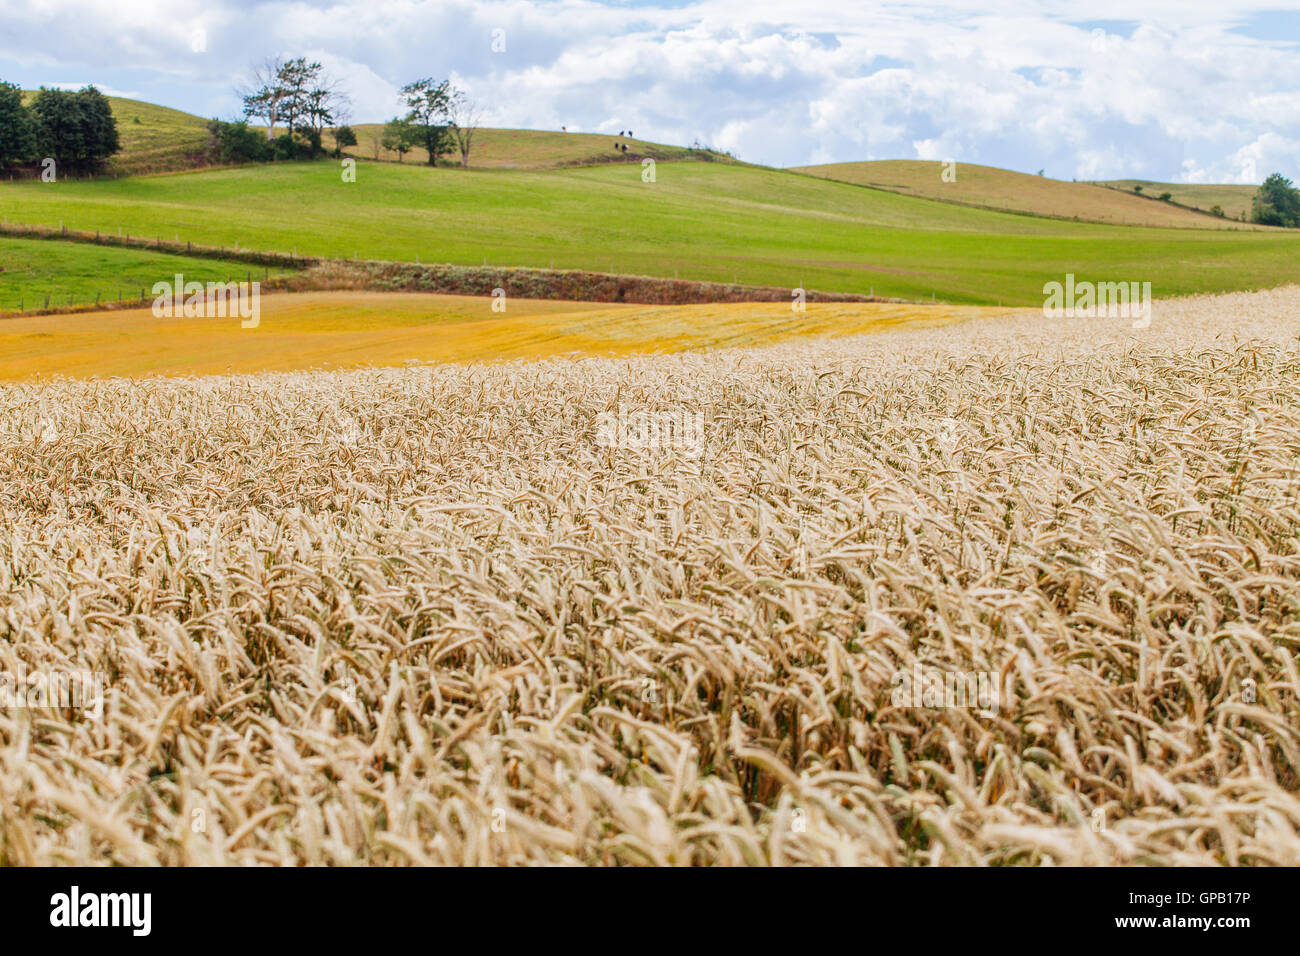 A view of the Skåne landscape and its wheat fields - Stock Image